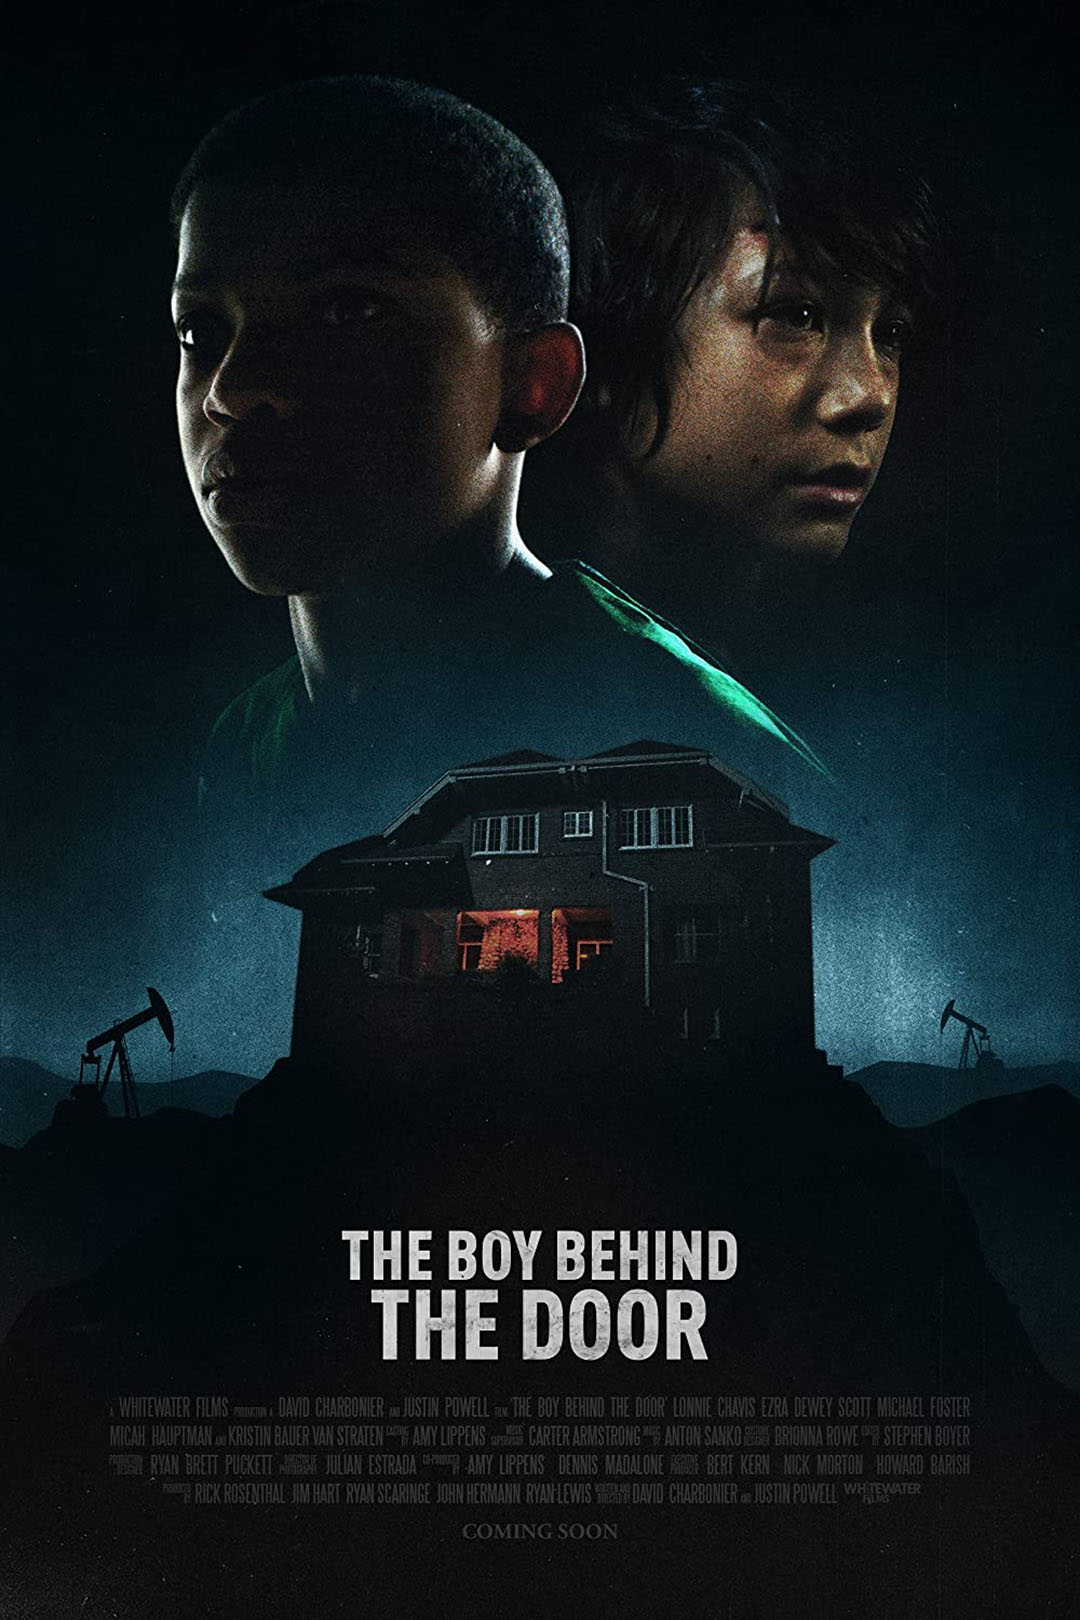 Young actors Lonnie Chavis and Ezra dewey grace the horror movie poster of The Boy Behind The Door